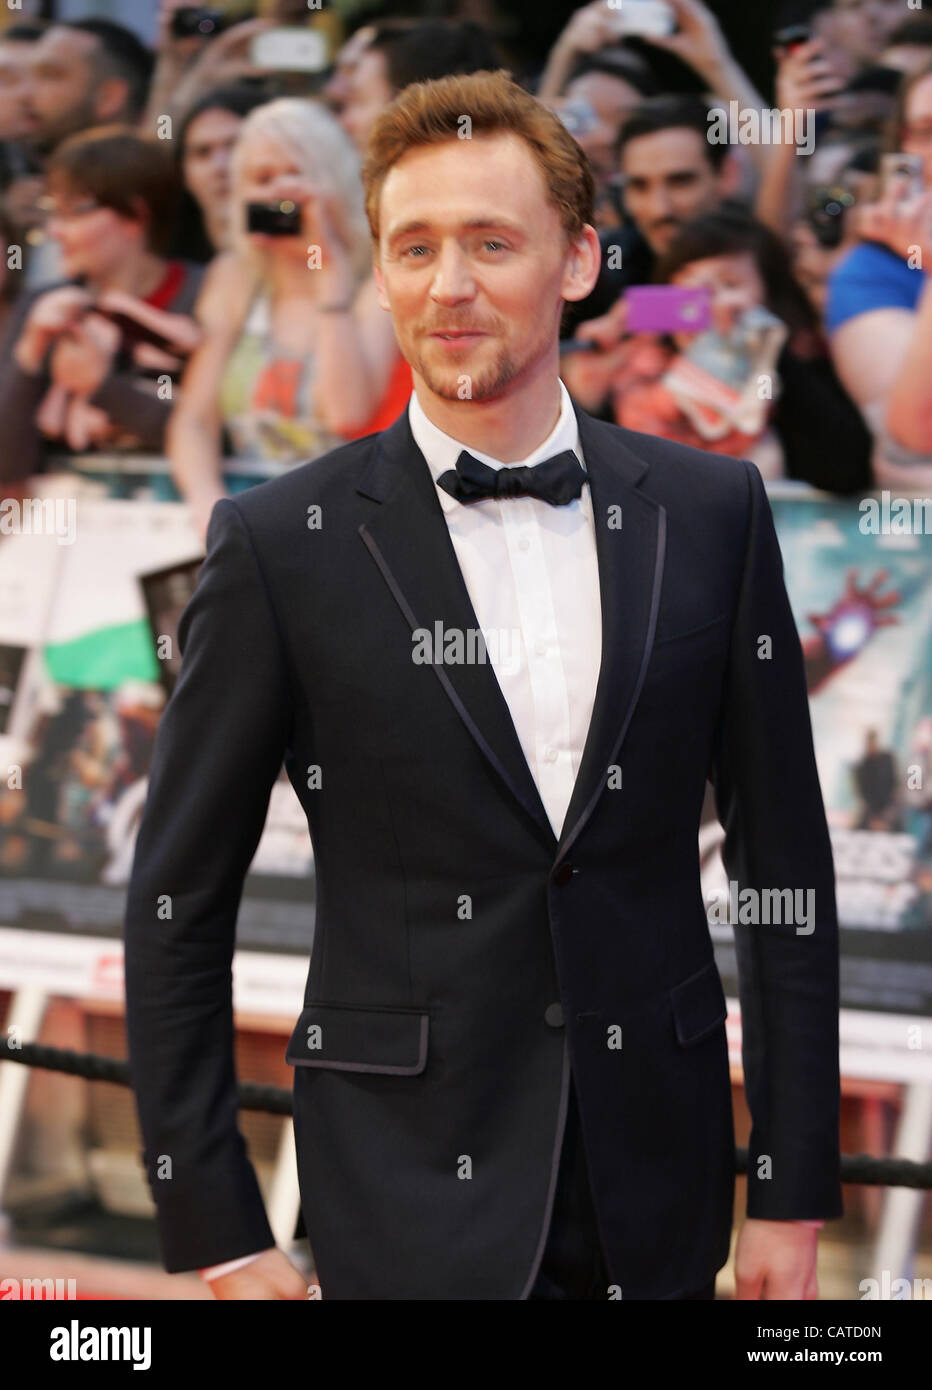 Tom Hiddleston attends the Avengers Assemble - UK film premiere at the Vue Westfield, Westfield Shopping Centre - Stock Image